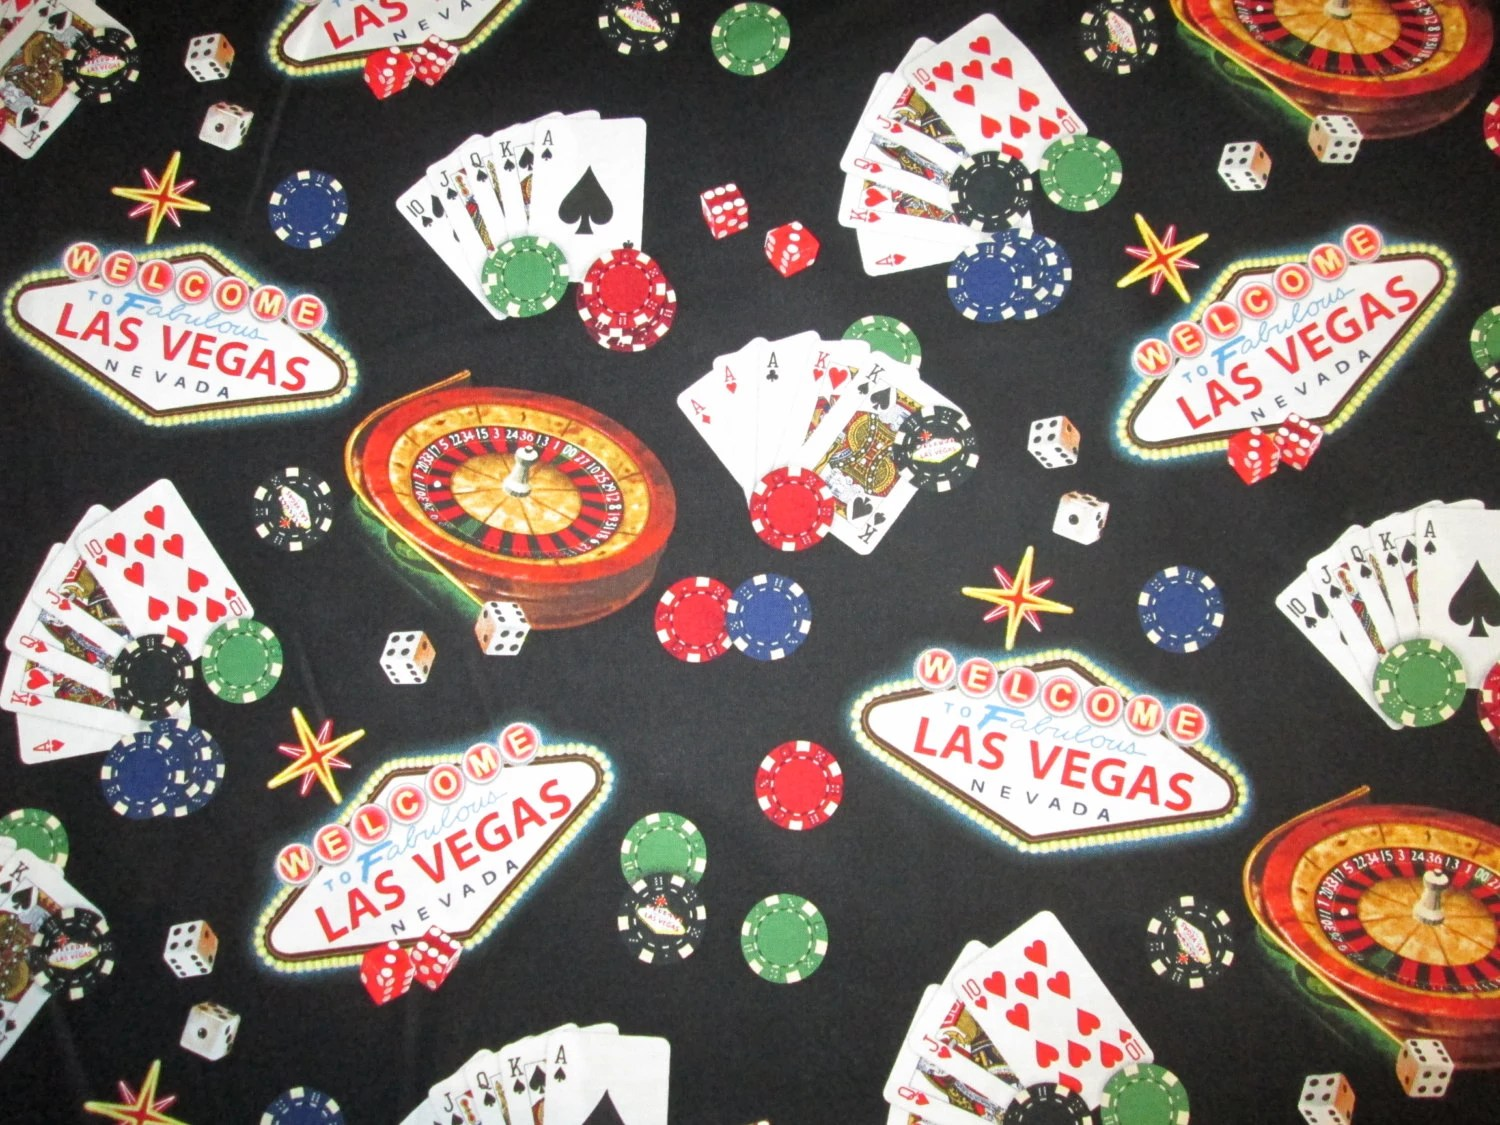 Dominoes Falling Wallpaper Las Vegas Sign Roulette Dice Poker Chips Cards Cotton Fabric